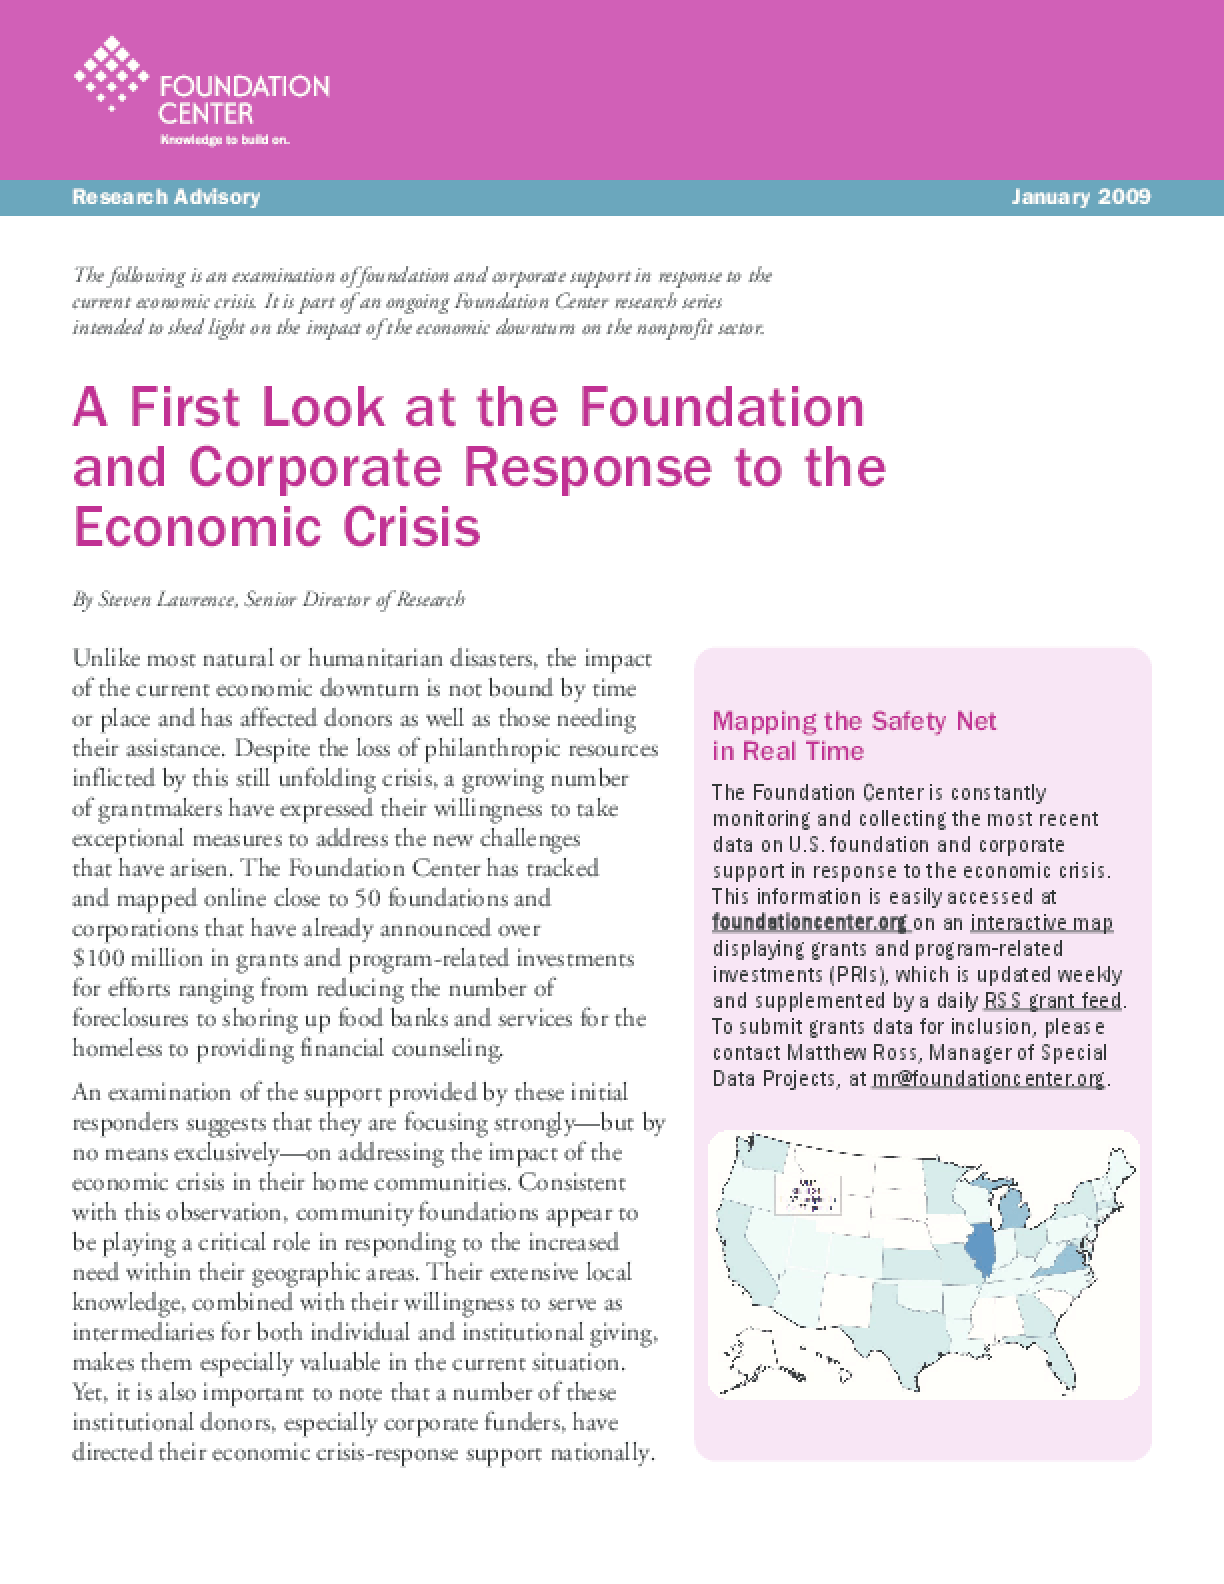 A First Look at the Foundation and Corporate Response to the Economic Crisis